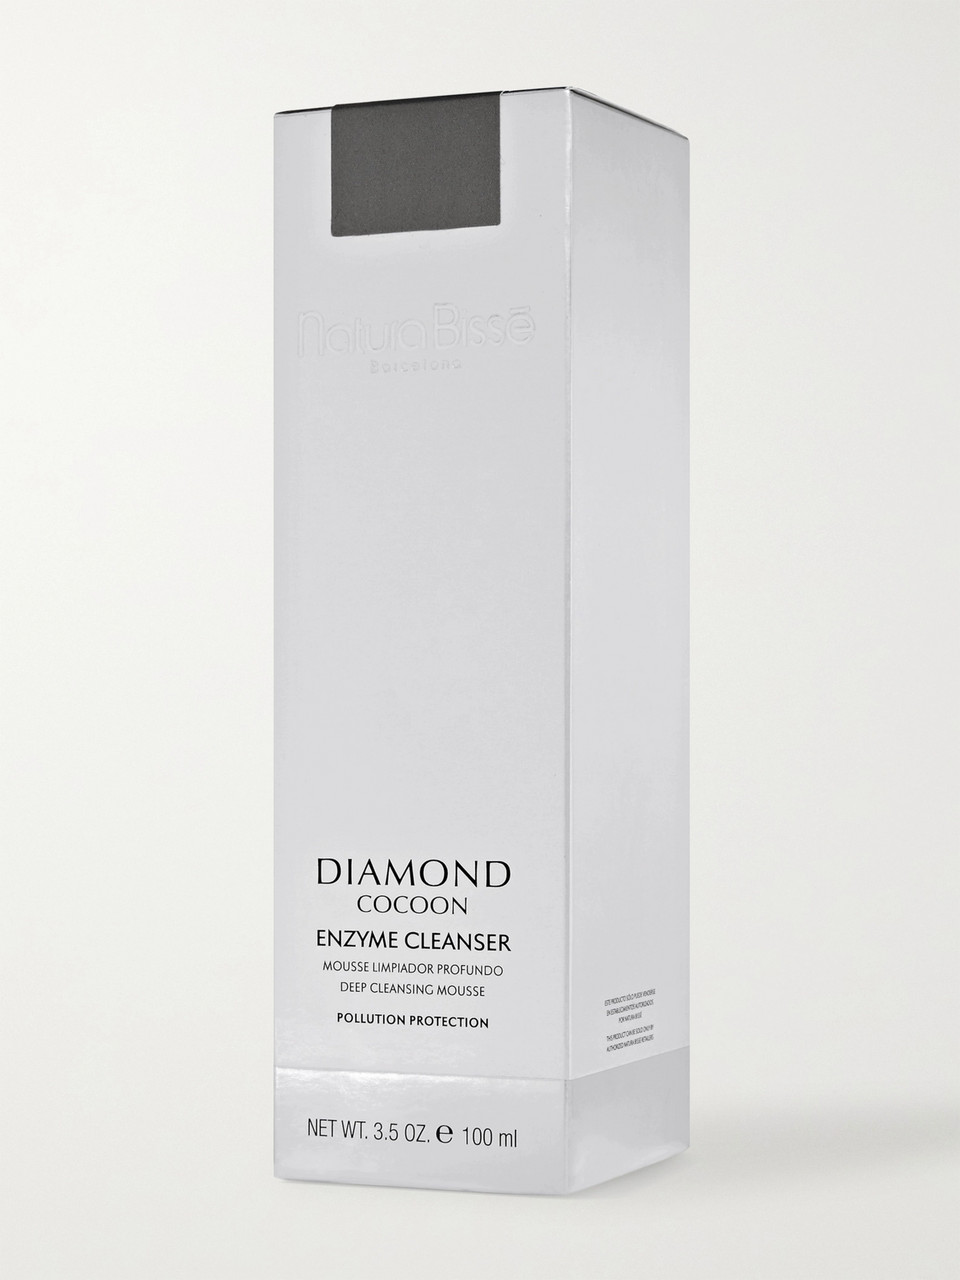 Natura Bissé Diamond Cocoon Enzyme Cleanser, 100ml